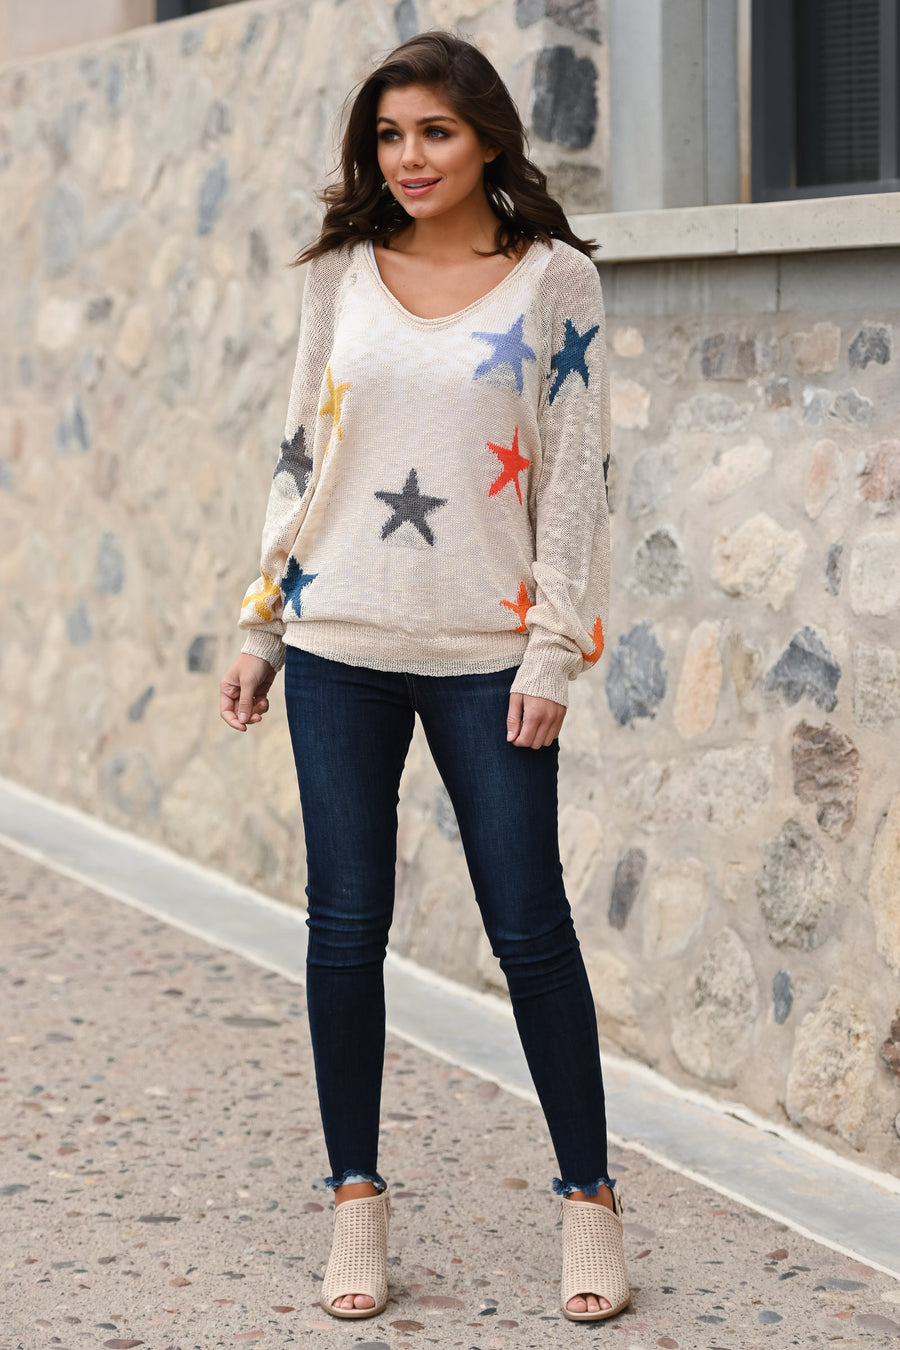 When Stars Align Top - Oatmeal women's colorful star print top, Closet Candy Boutique 1